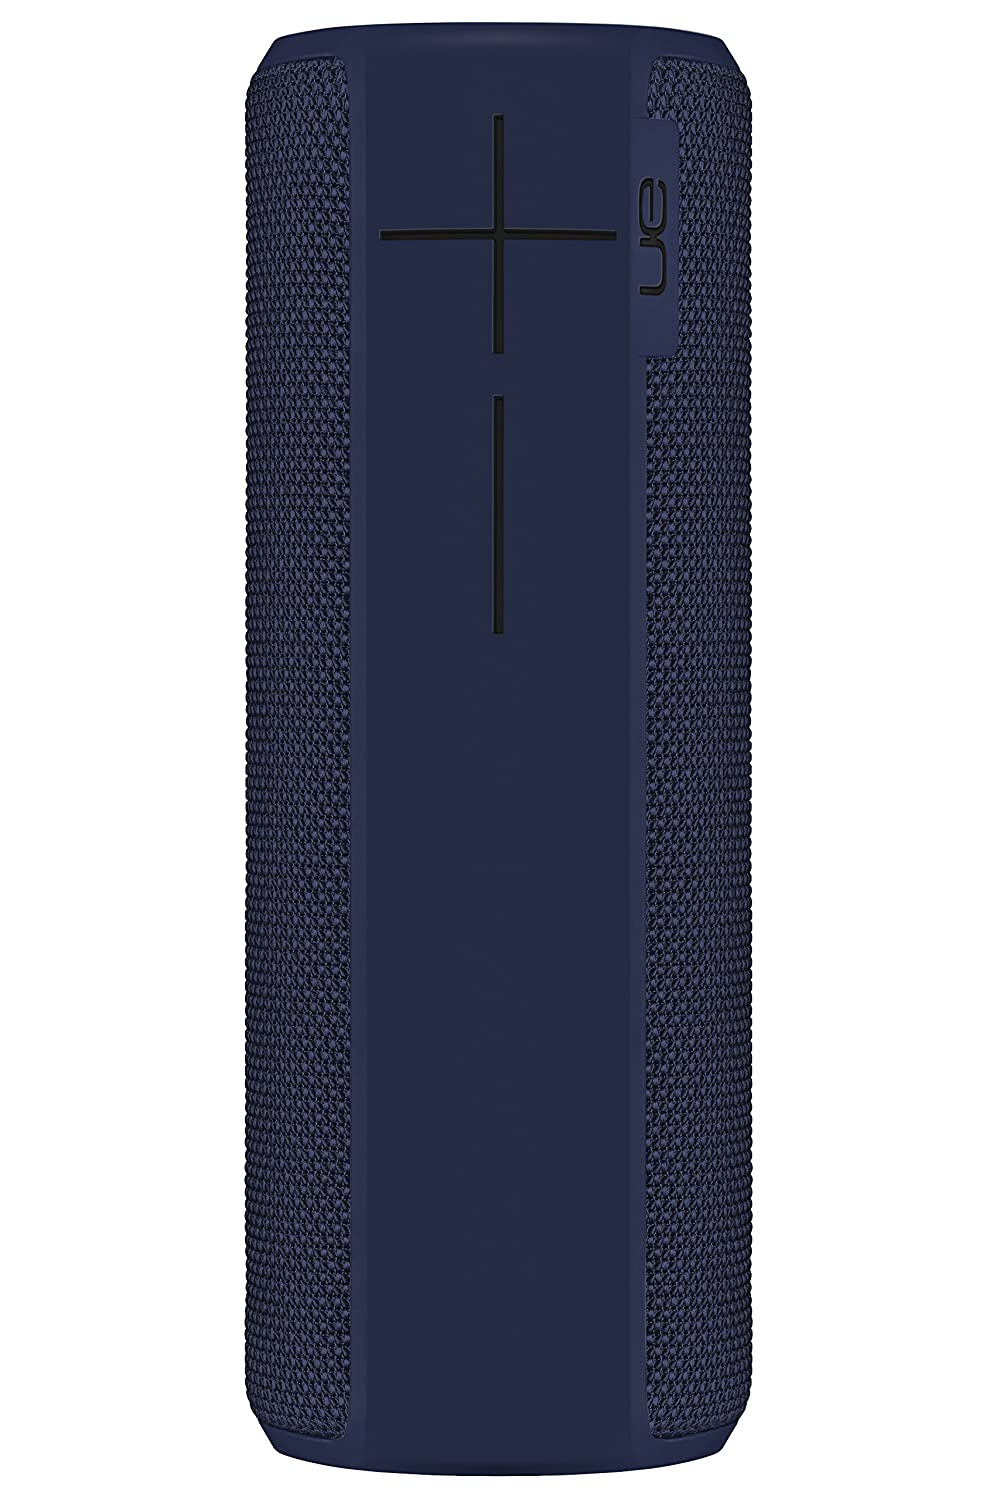 Ultimate Ears BOOM 2 Midnight Blue Wireless Mobile Bluetooth Speaker  (Waterproof & Shockproof) - Limited Edition